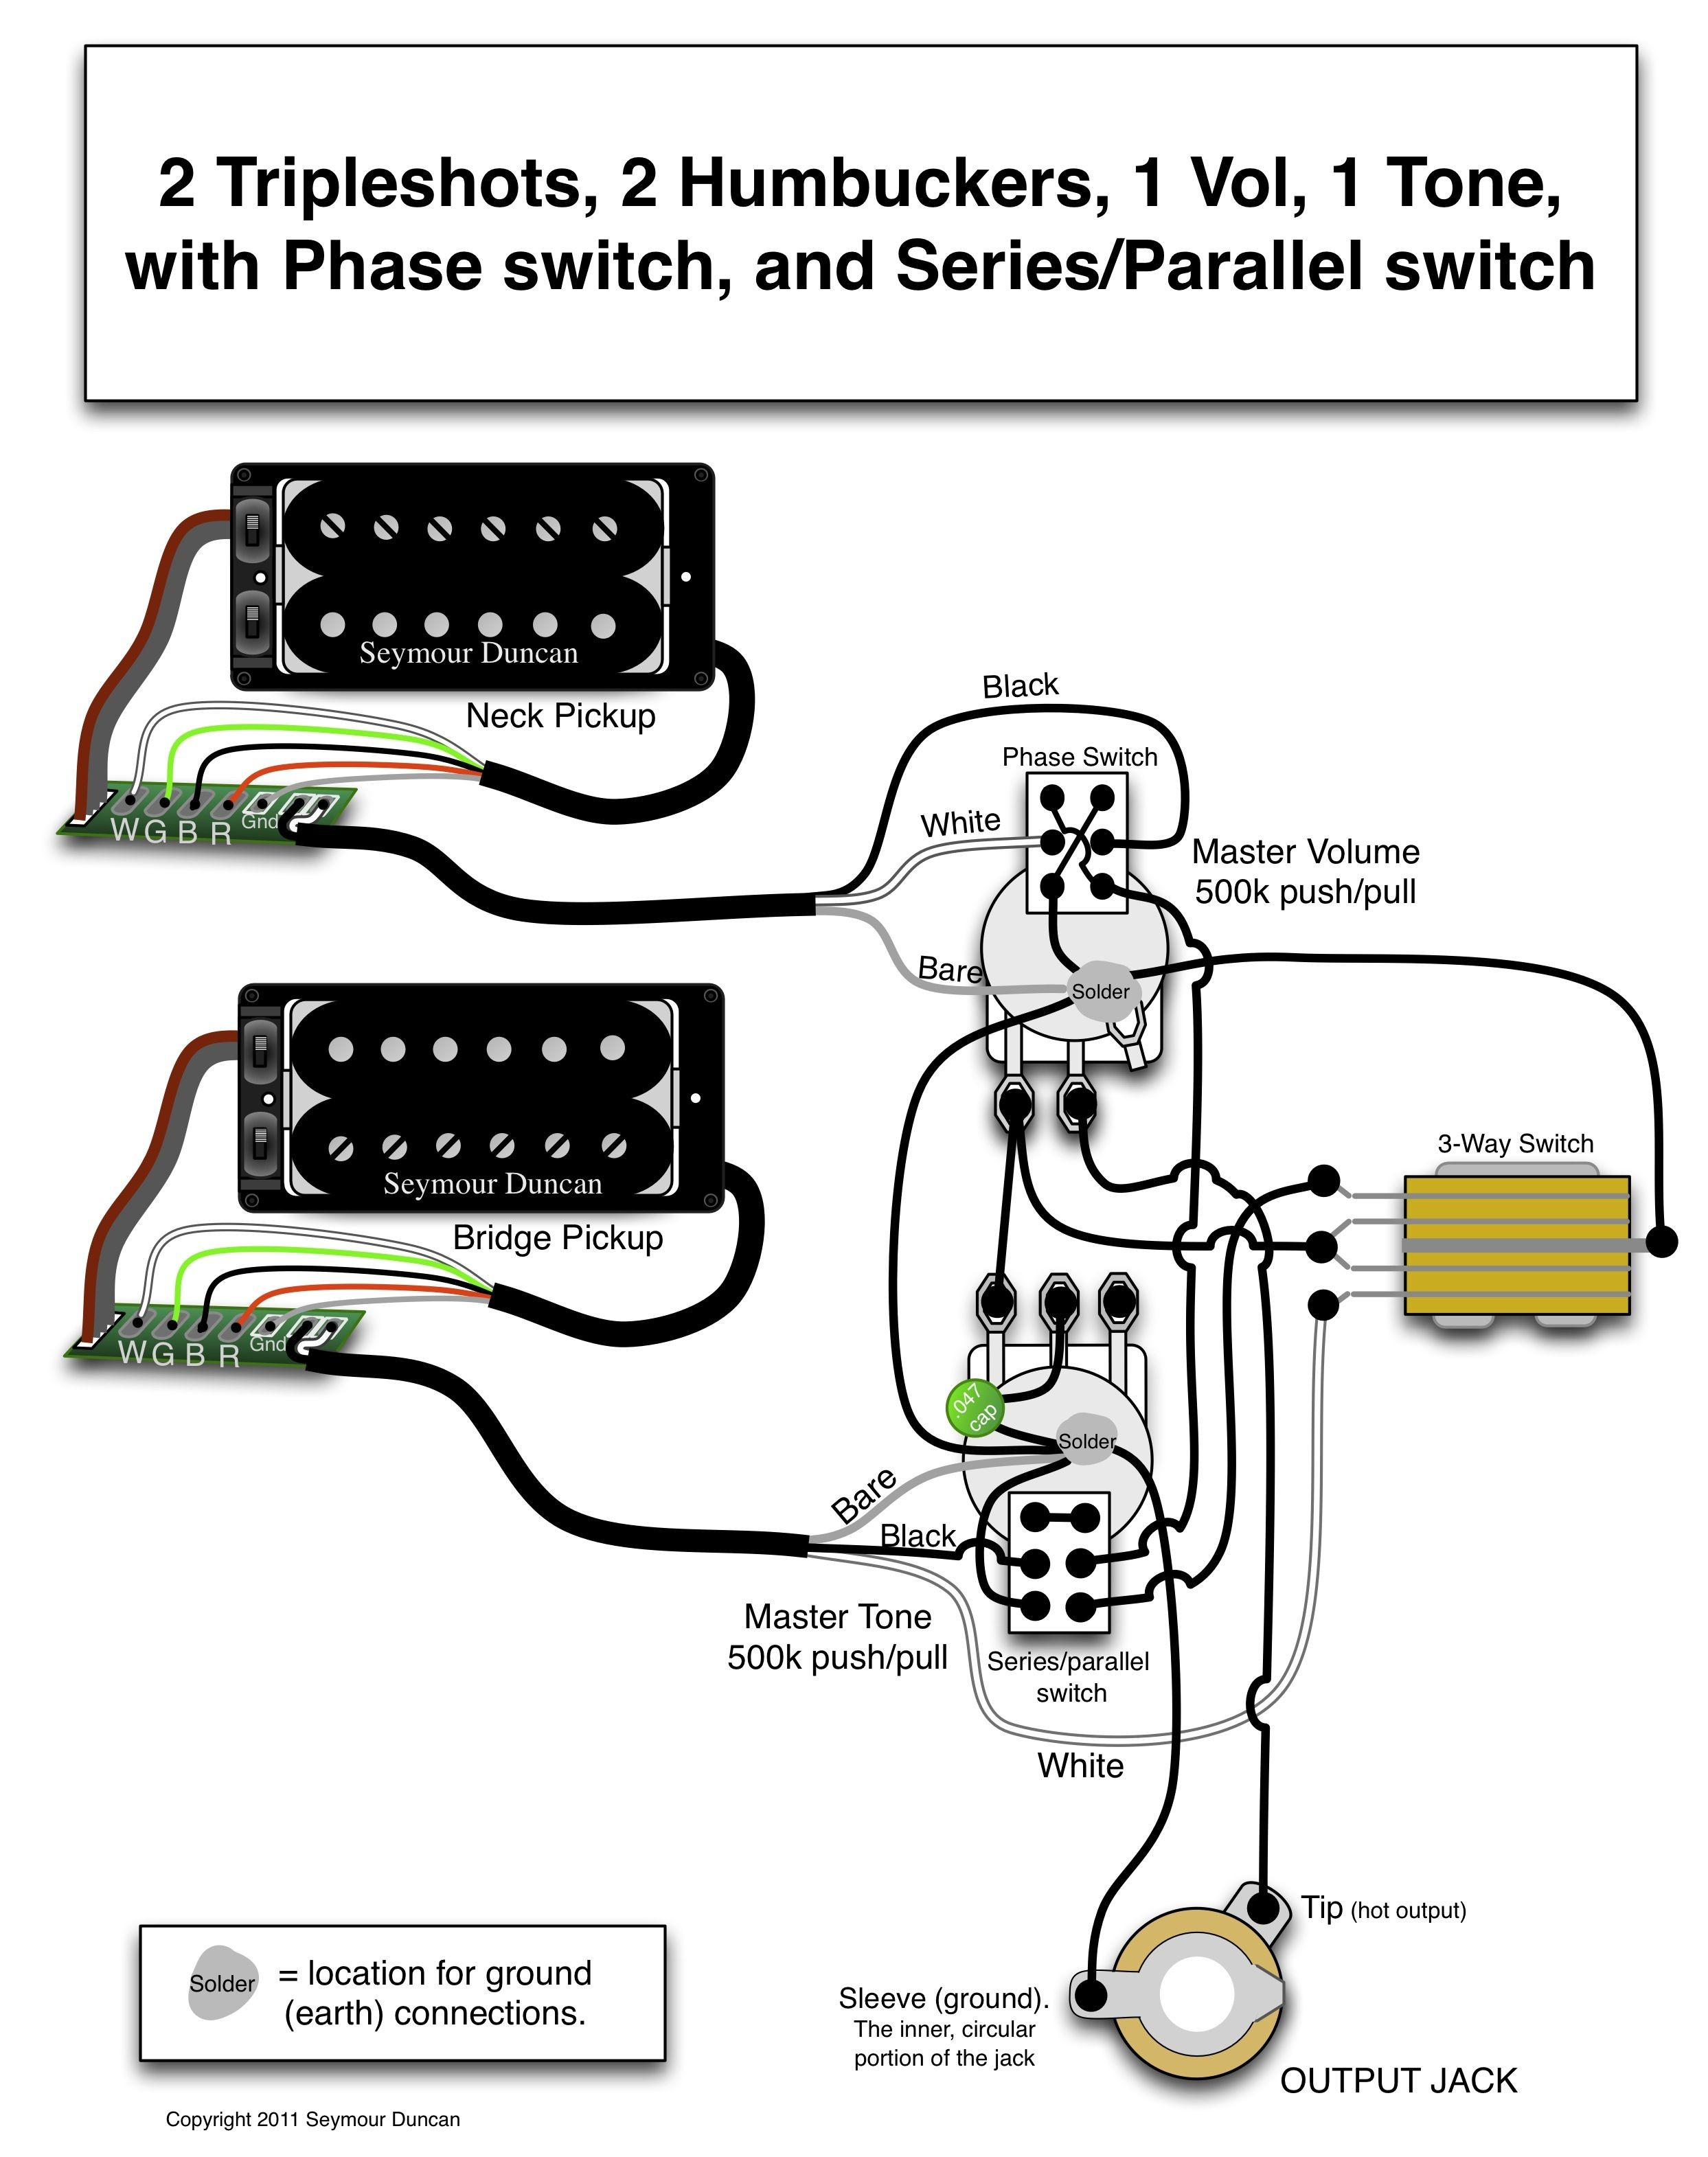 Humbucker Single Humbucker Pickup Wiring Seymour Duncan Wiring Diagram 2 Triple Shots 2 Humbuckers